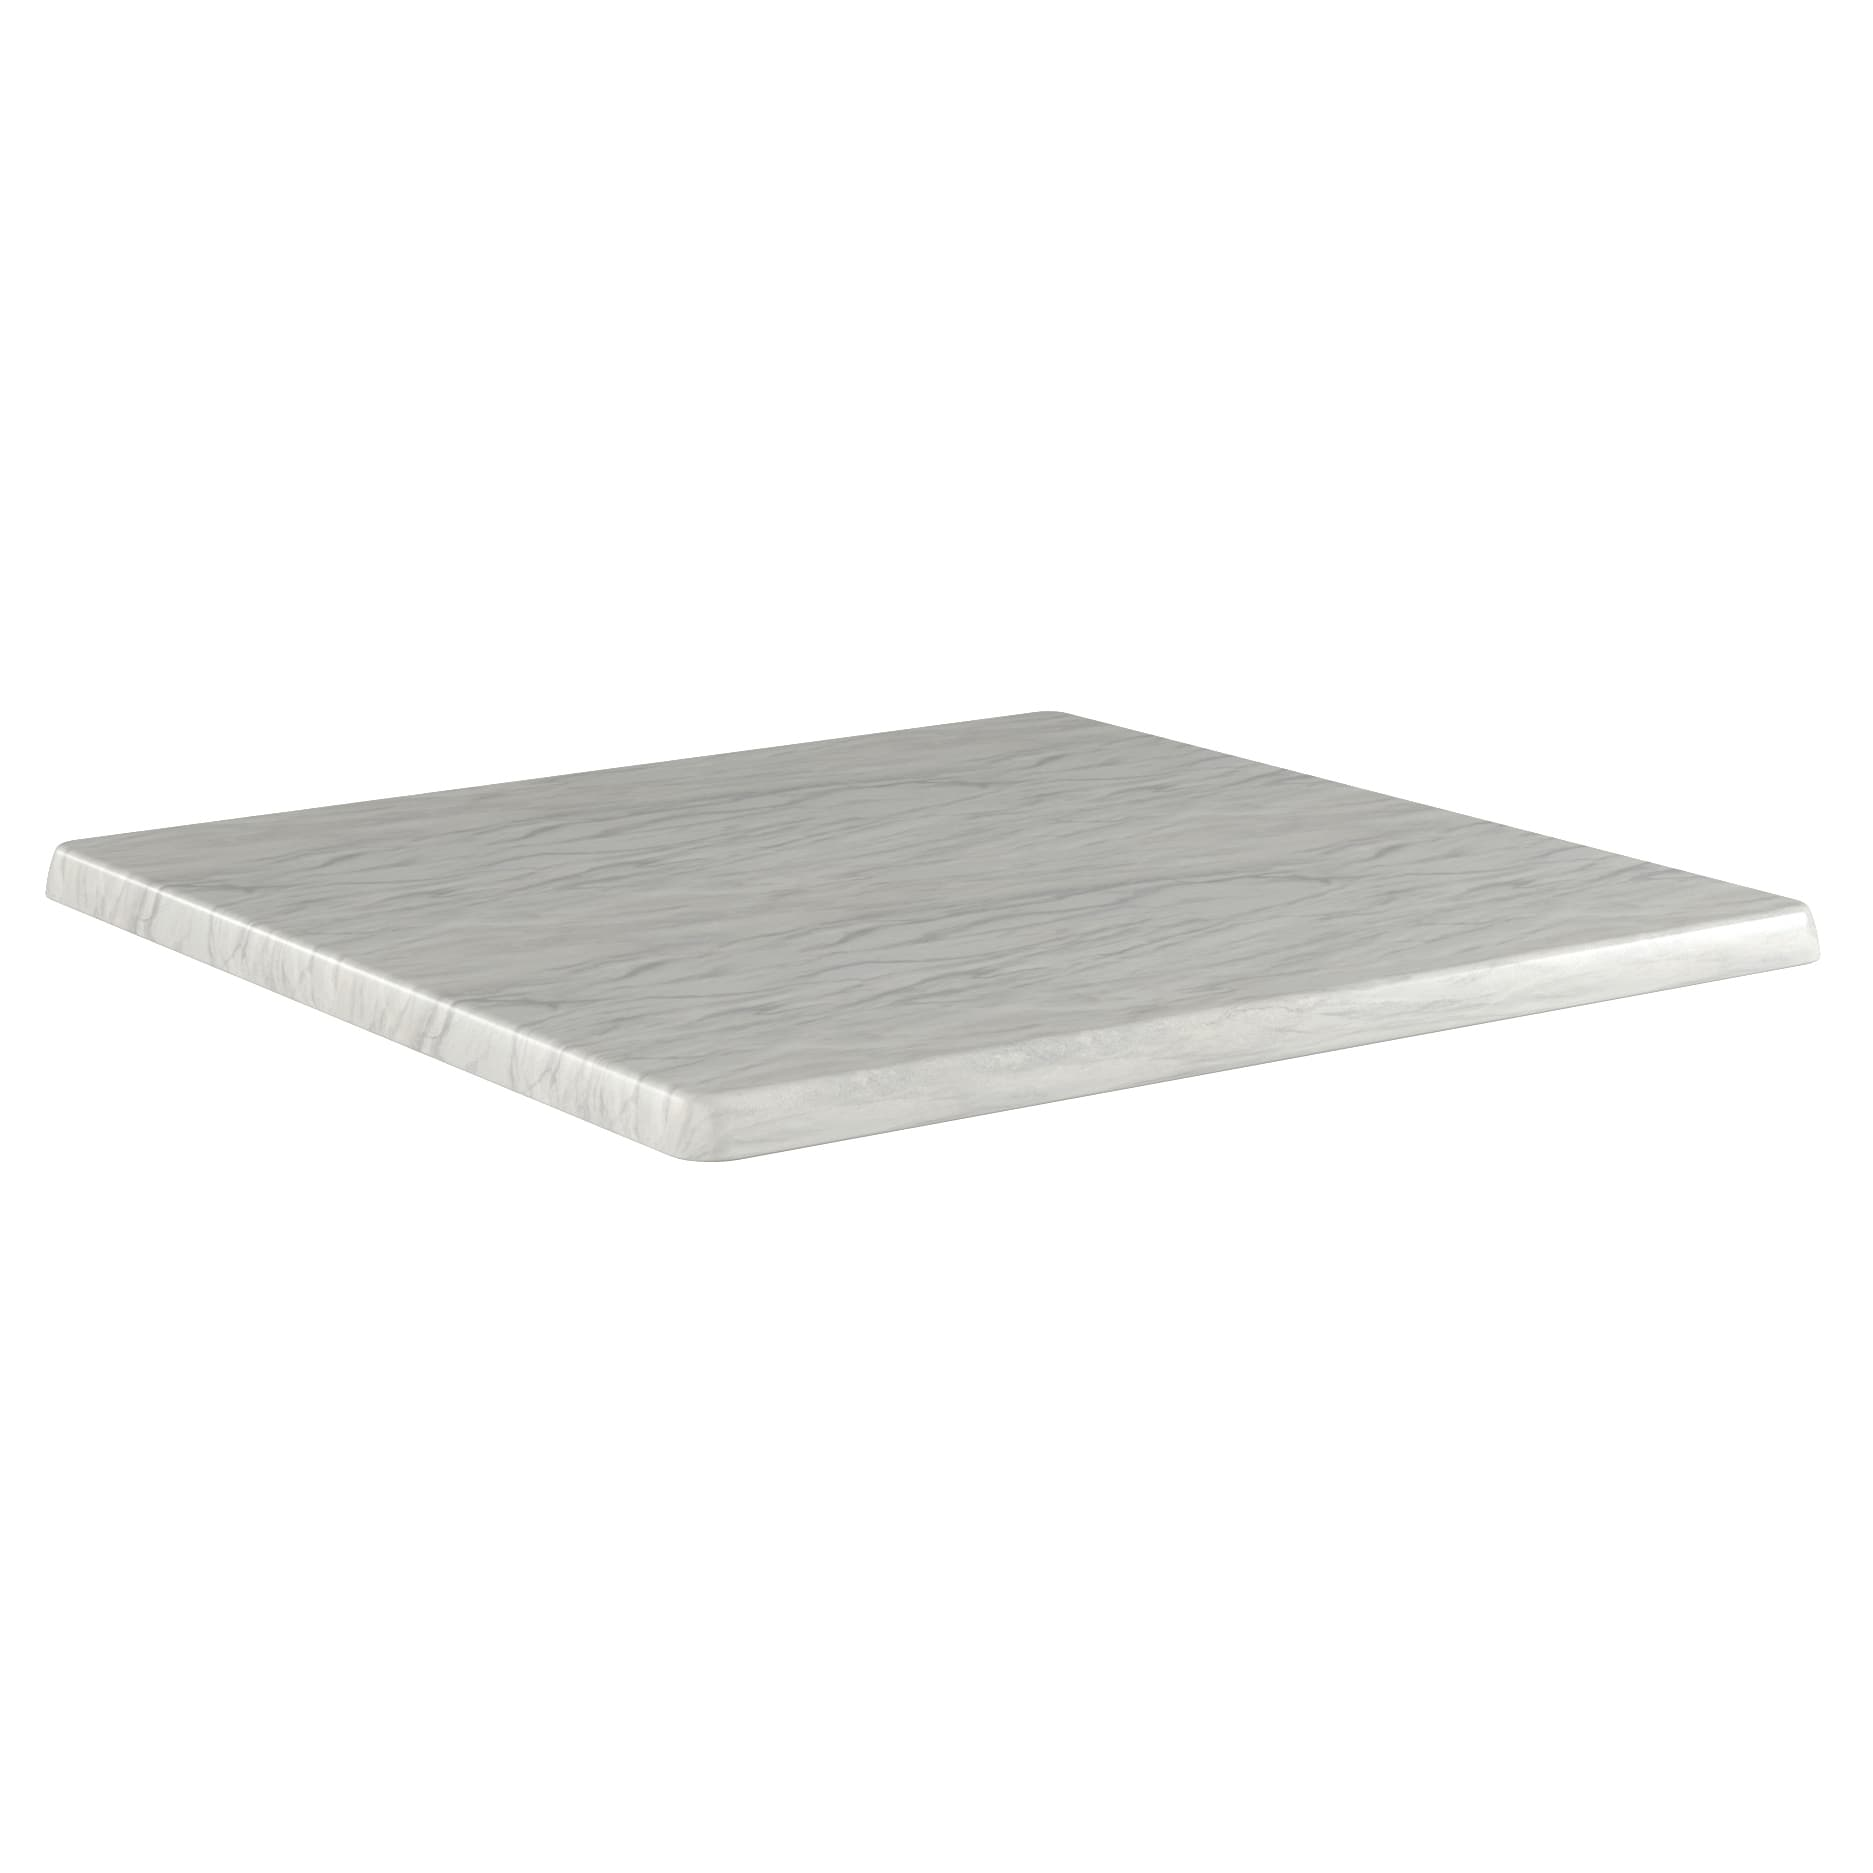 Outdoor Resin Table Top in Soft Grain Stone Finish with Outdoor Resin Table Top in Soft Grain Stone Finish